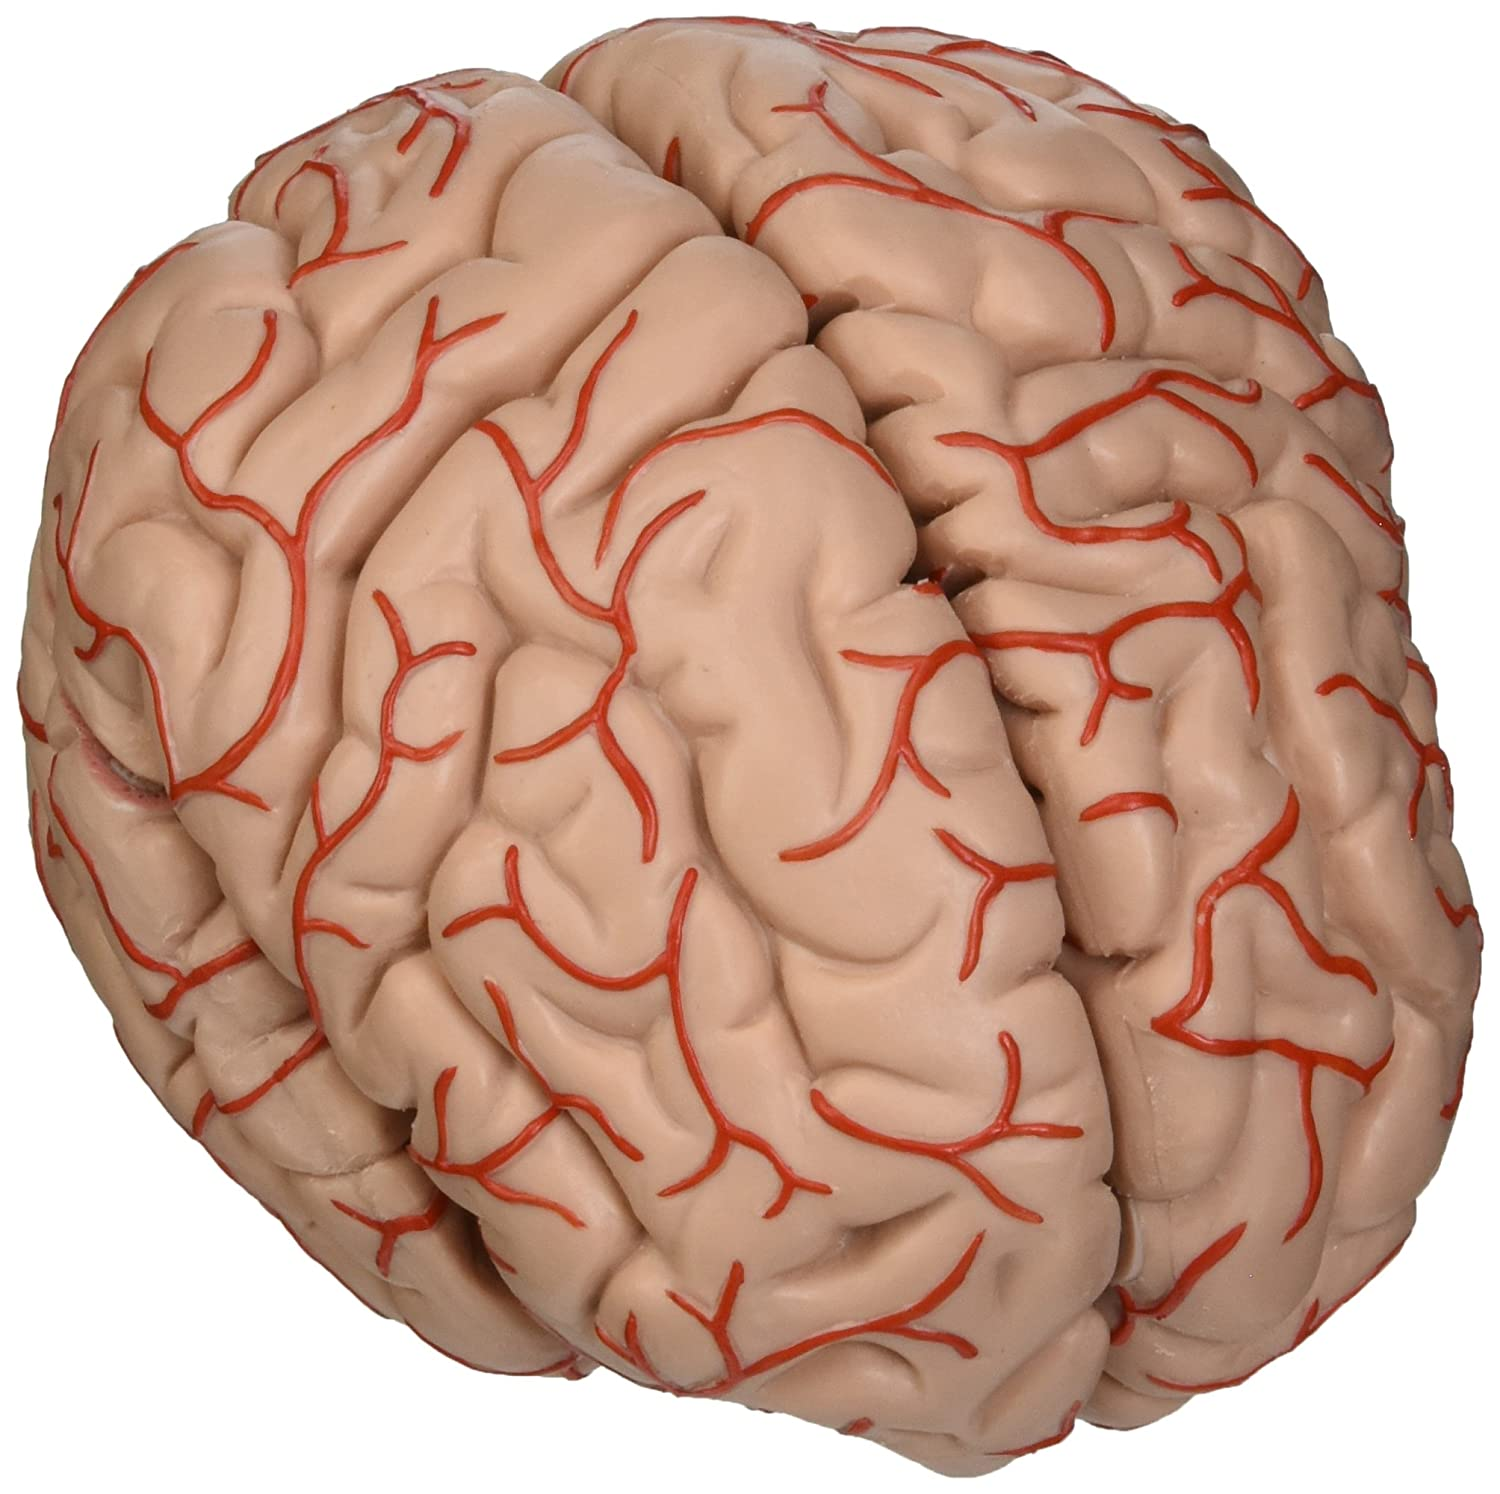 3B Scientific C20 9 Part Brain with Arteries Model, 5.9\